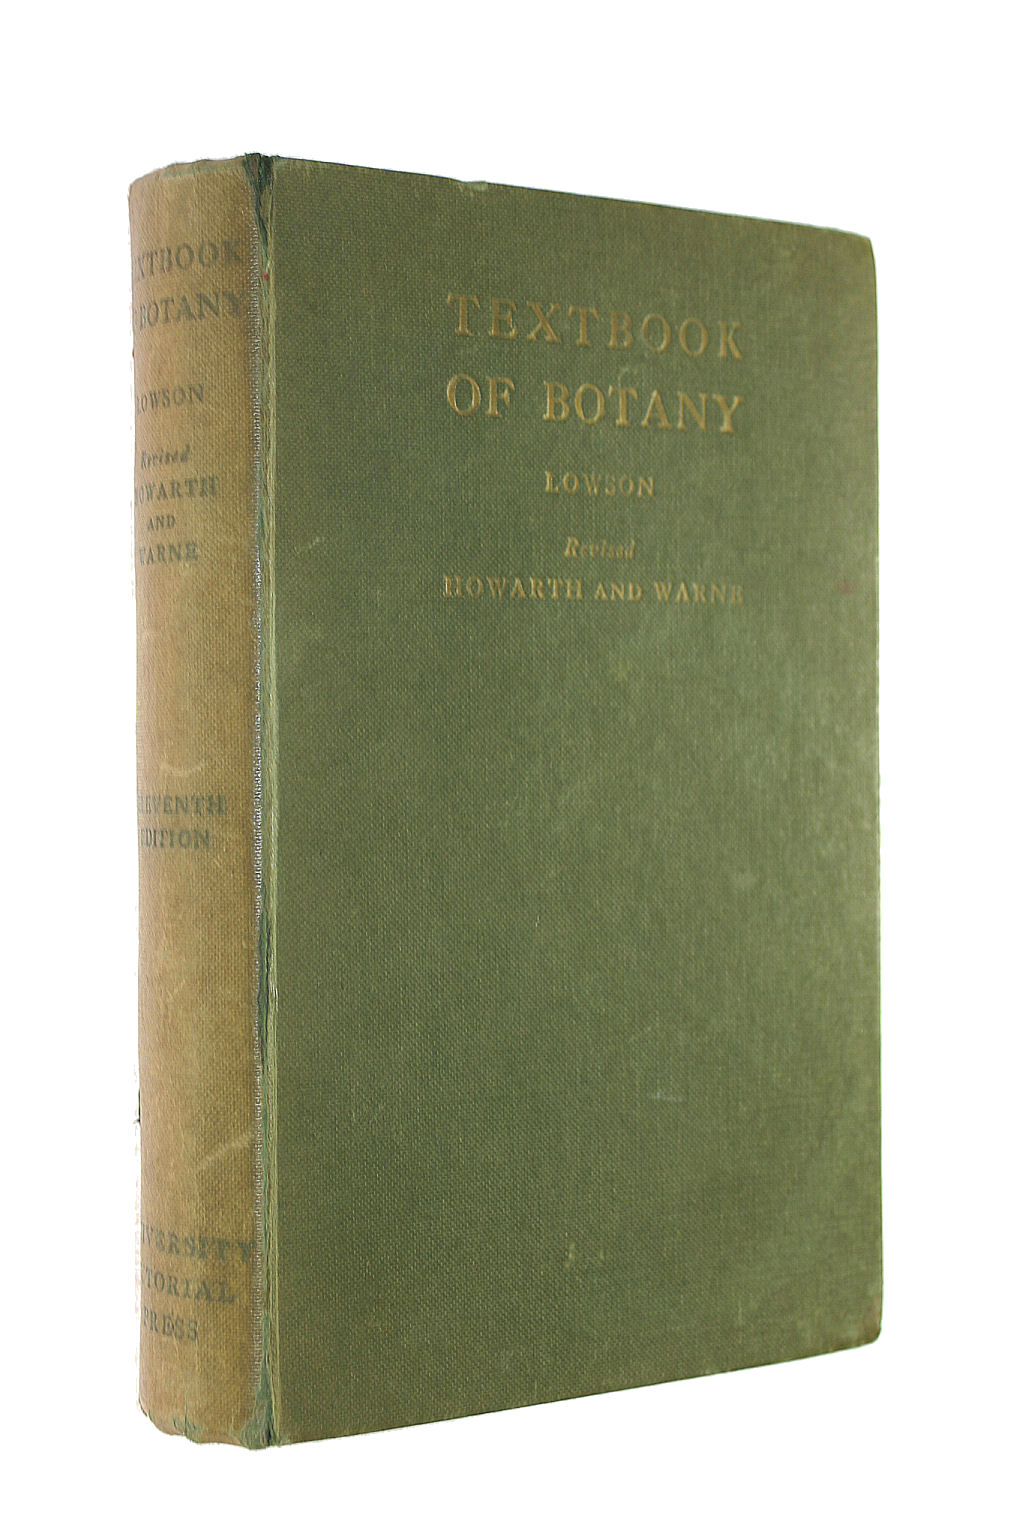 Image for TEXTBOOK OF BOTANY. Revised and largely rewritten by W. O. Howarth ... and L. G